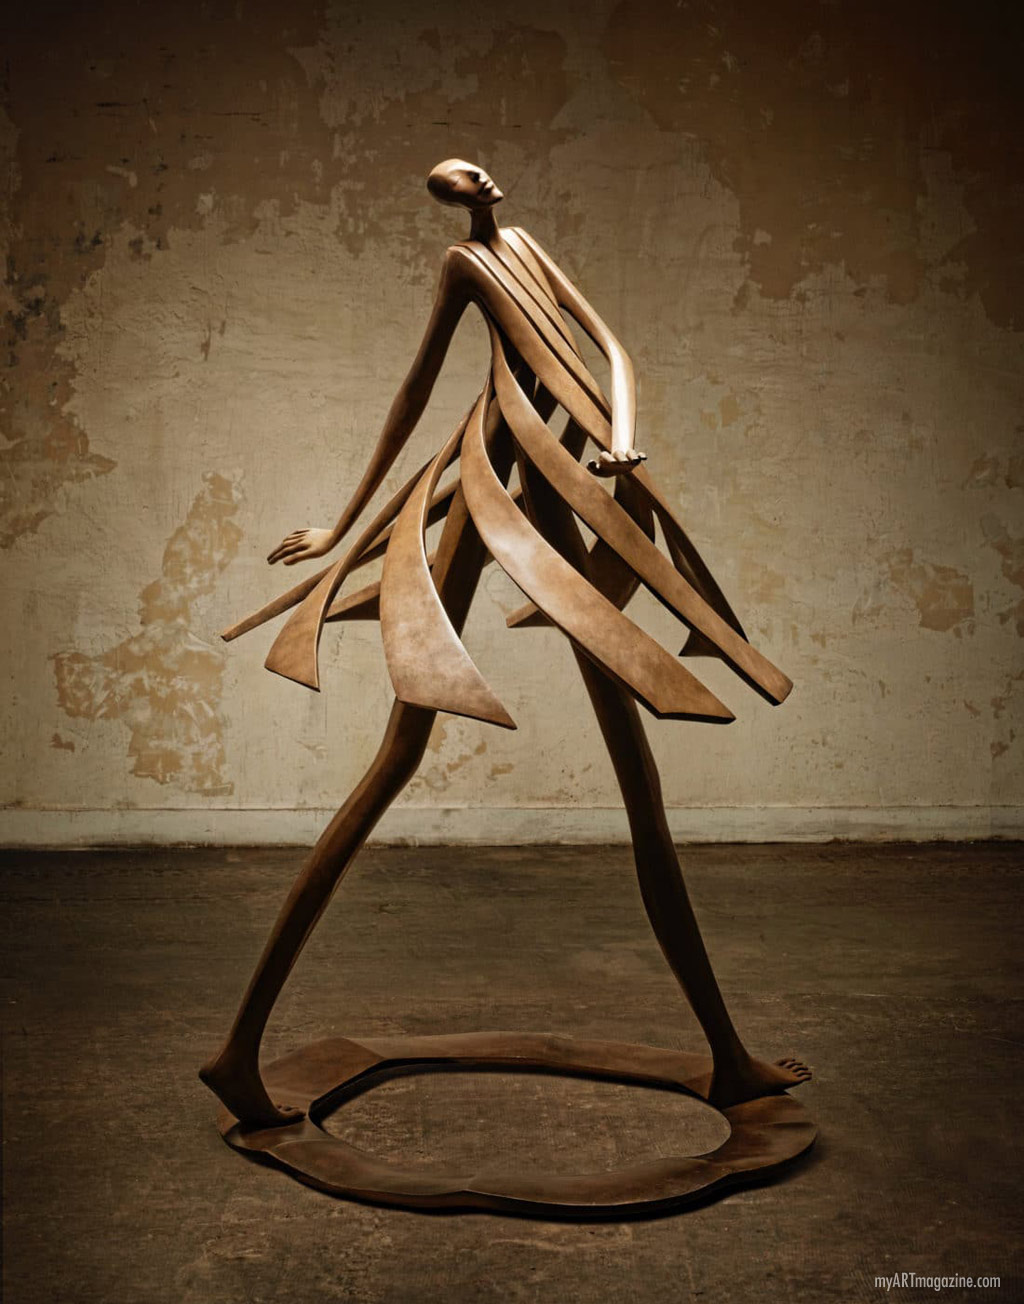 bronze sculpture primavera by isabel miramontes